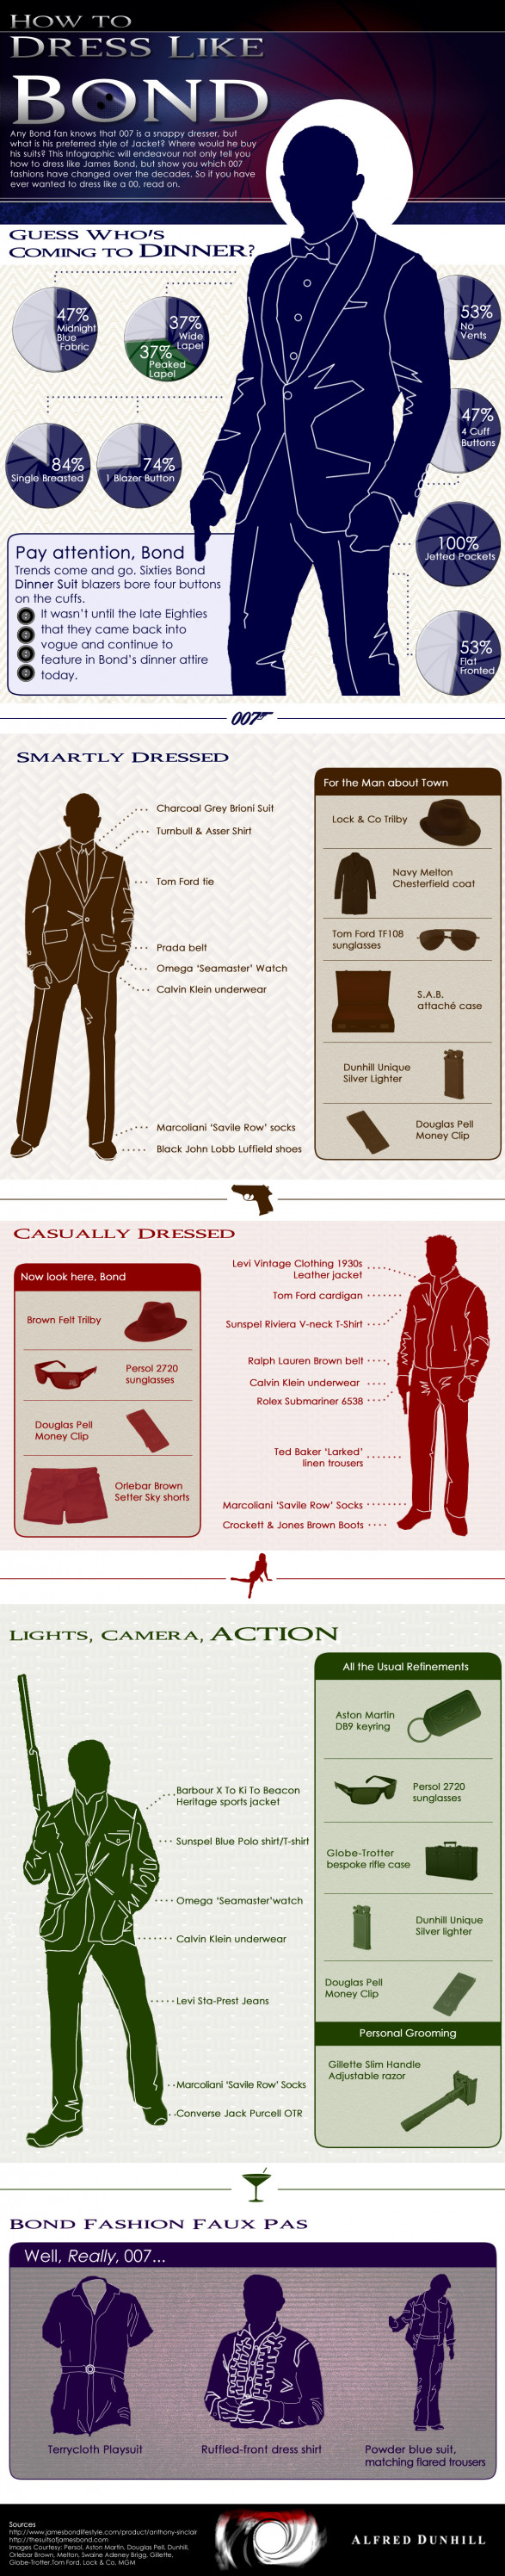 How to dress like james bond - infographic